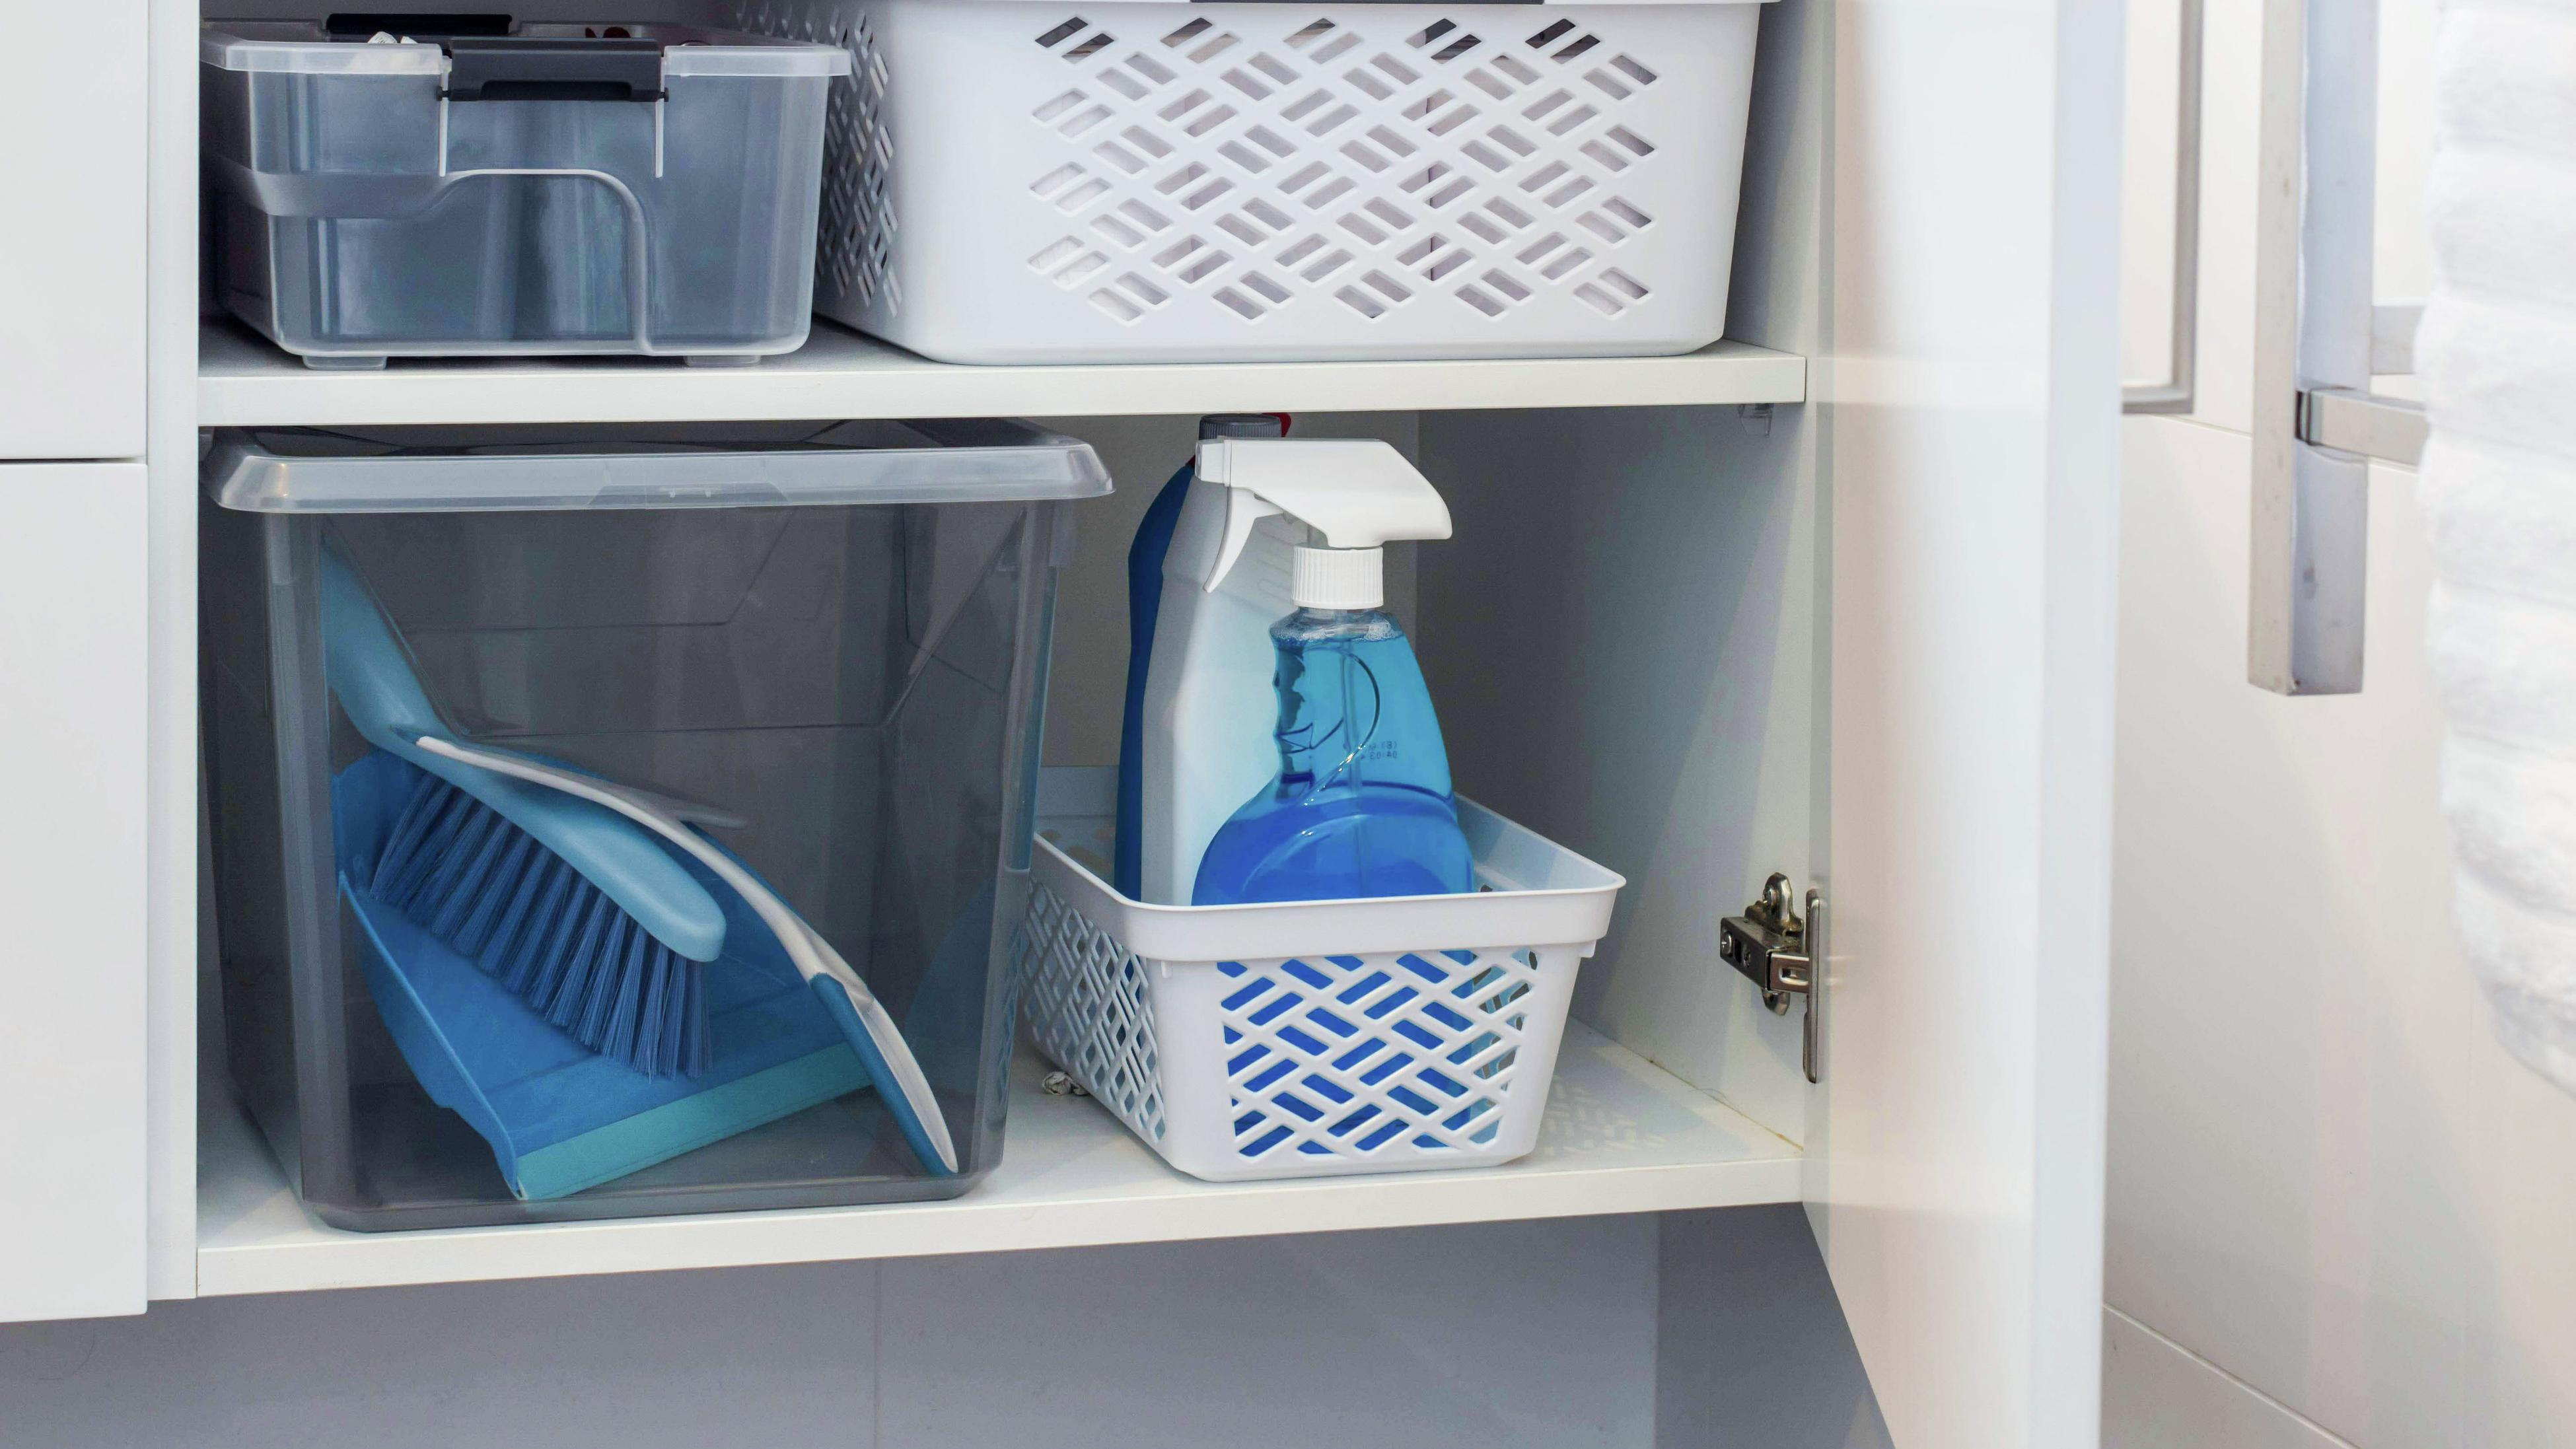 Storage baskets and cleaning products in bathroom vanity unit cupboard.